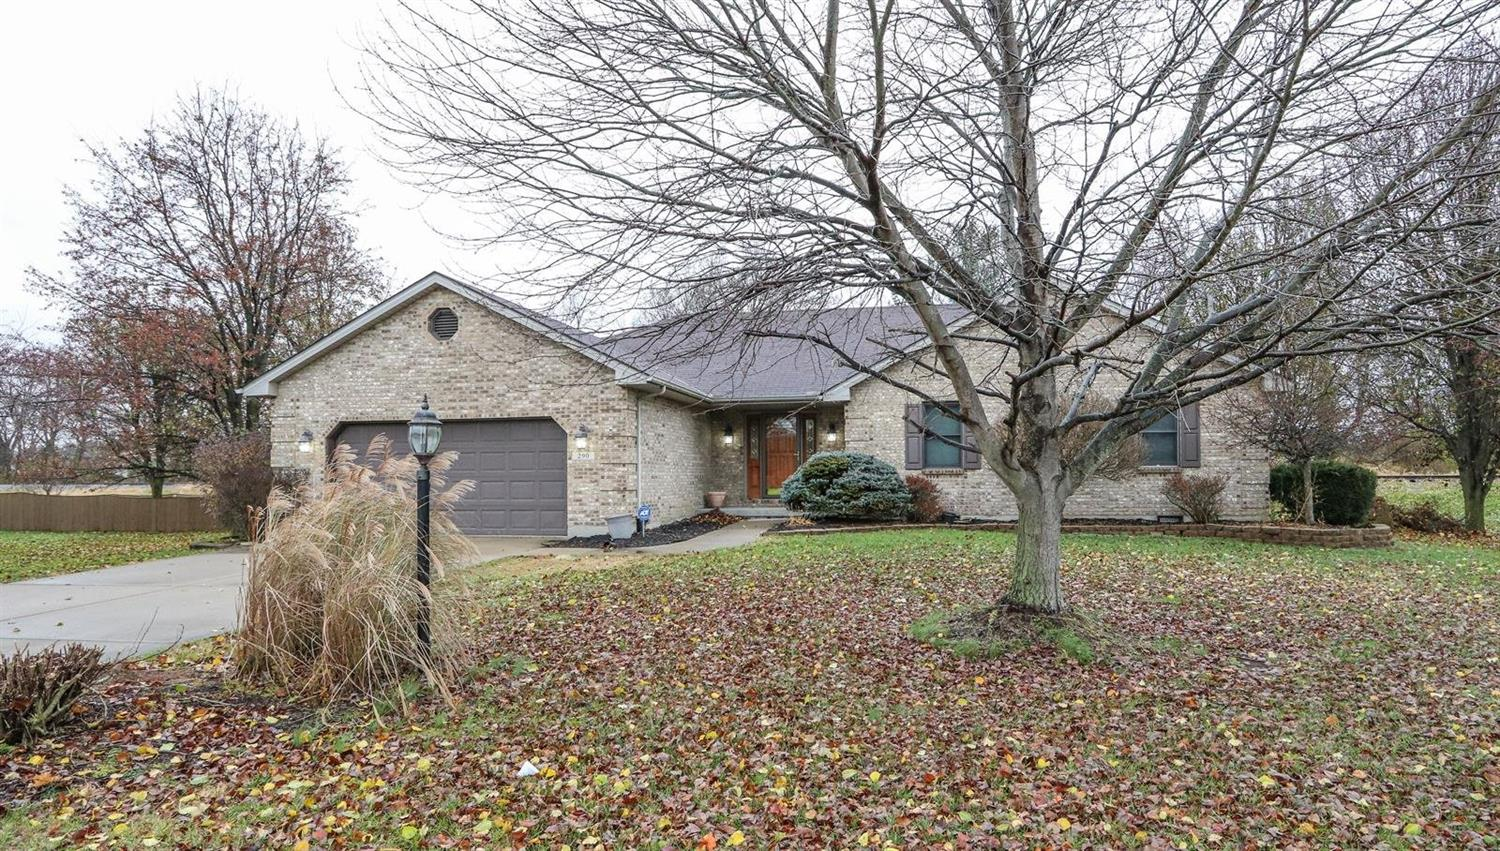 Property for sale at 290 Ethelrob Circle, Carlisle,  OH 45005